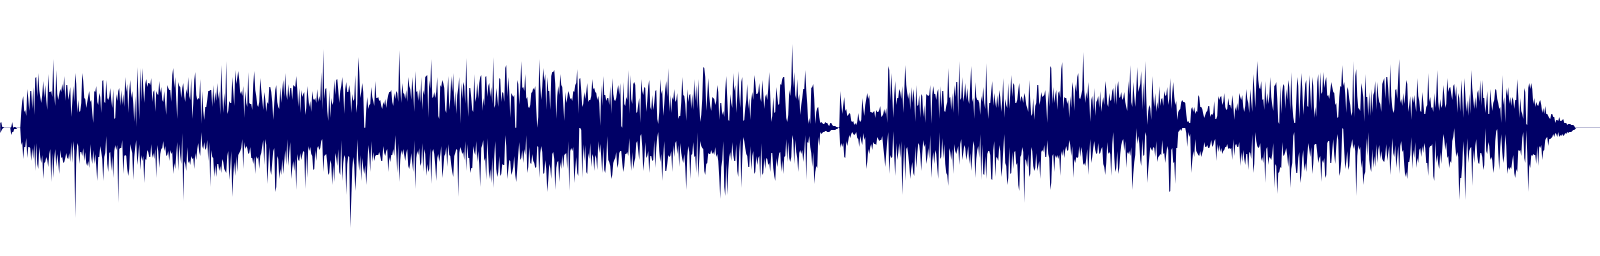 waveform of track #136200